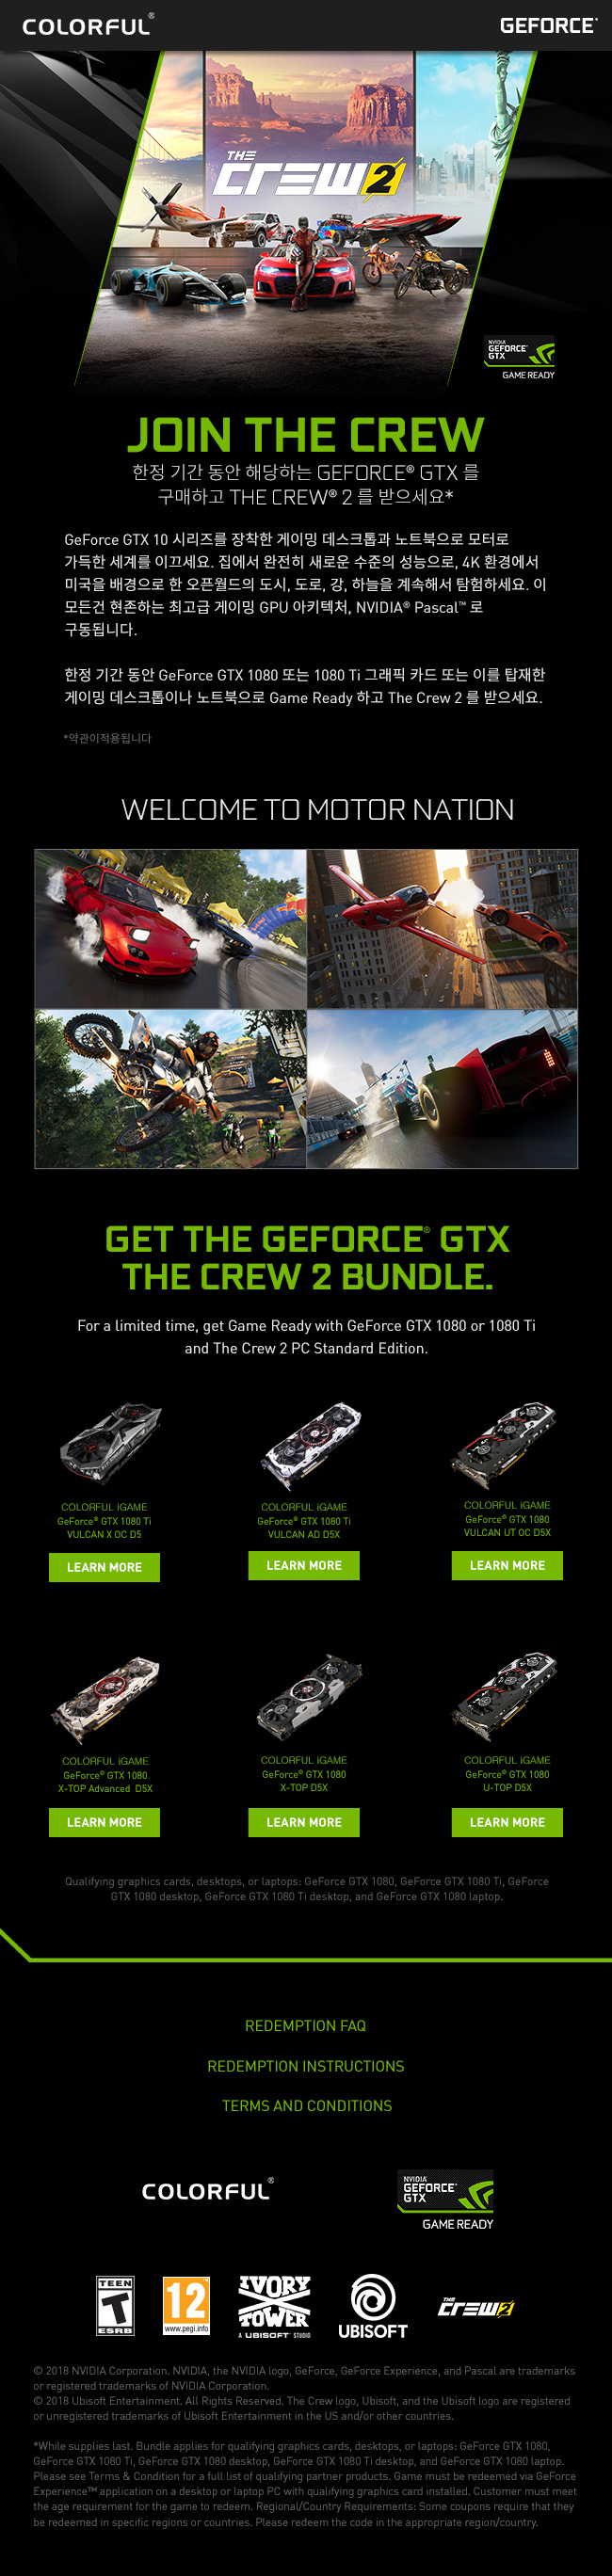 geforce-game-ready-crew2-channel-lp-emea-apac-5-kr-.jpg